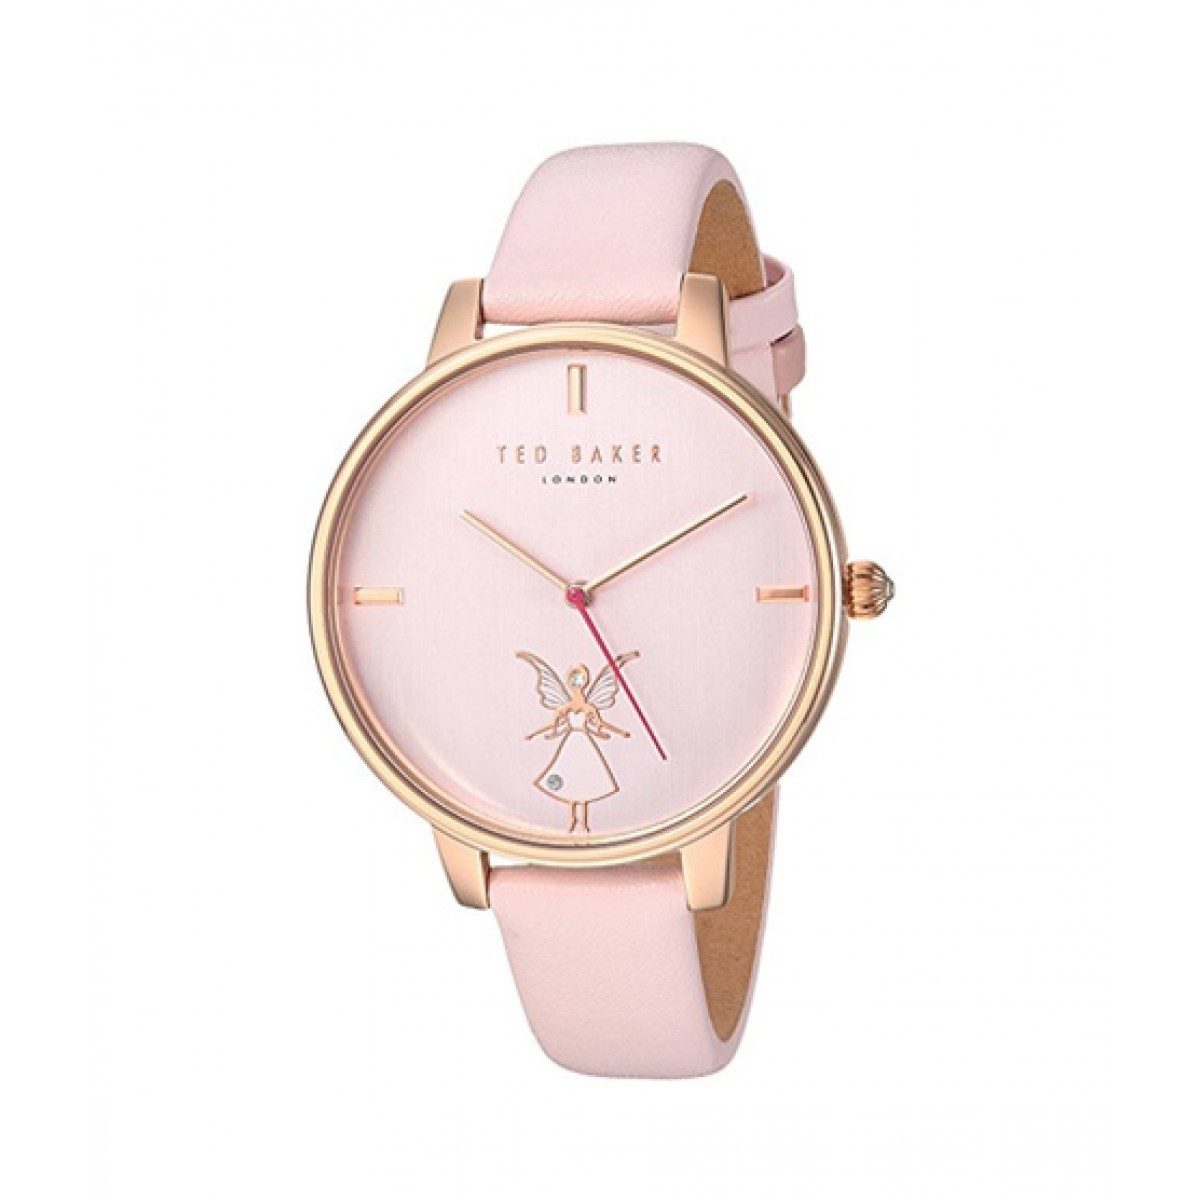 2604e8407 Ted Baker Kate Quartz Women s Watch Price in Pakistan